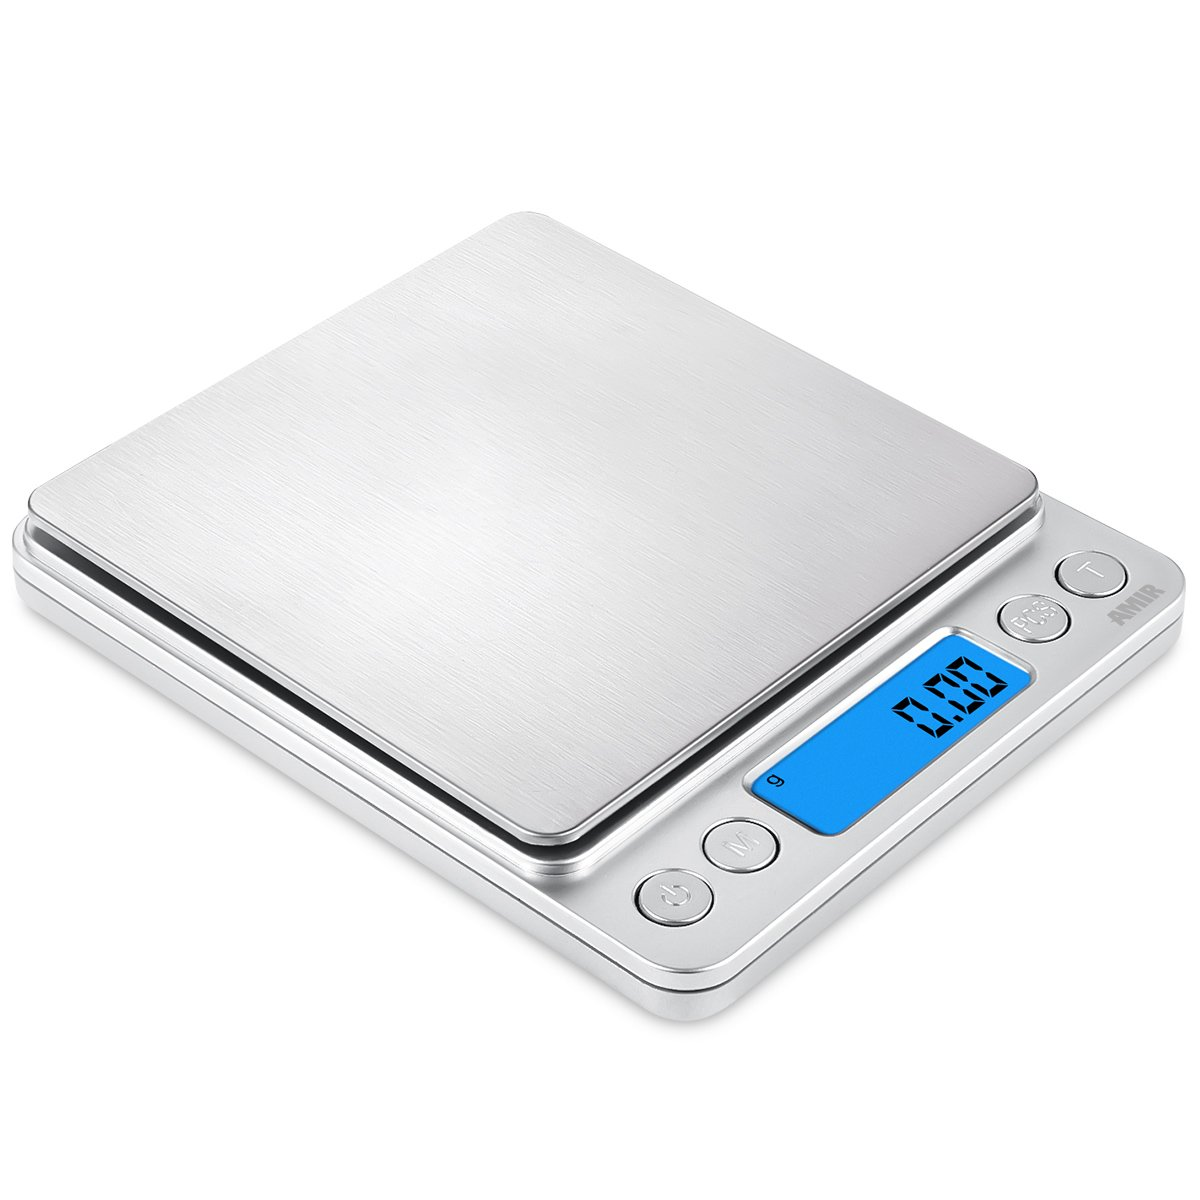 AMIR Digital Kitchen Scale, 500g/0.01g Mini Pocket Jewelry Scale, Cooking Food Scale with Backlit LCD Display, 2 Trays, 6 Units, Auto Off, Tare, PCS Function, Stainless Steel, Battery Included, Black US-KA8B